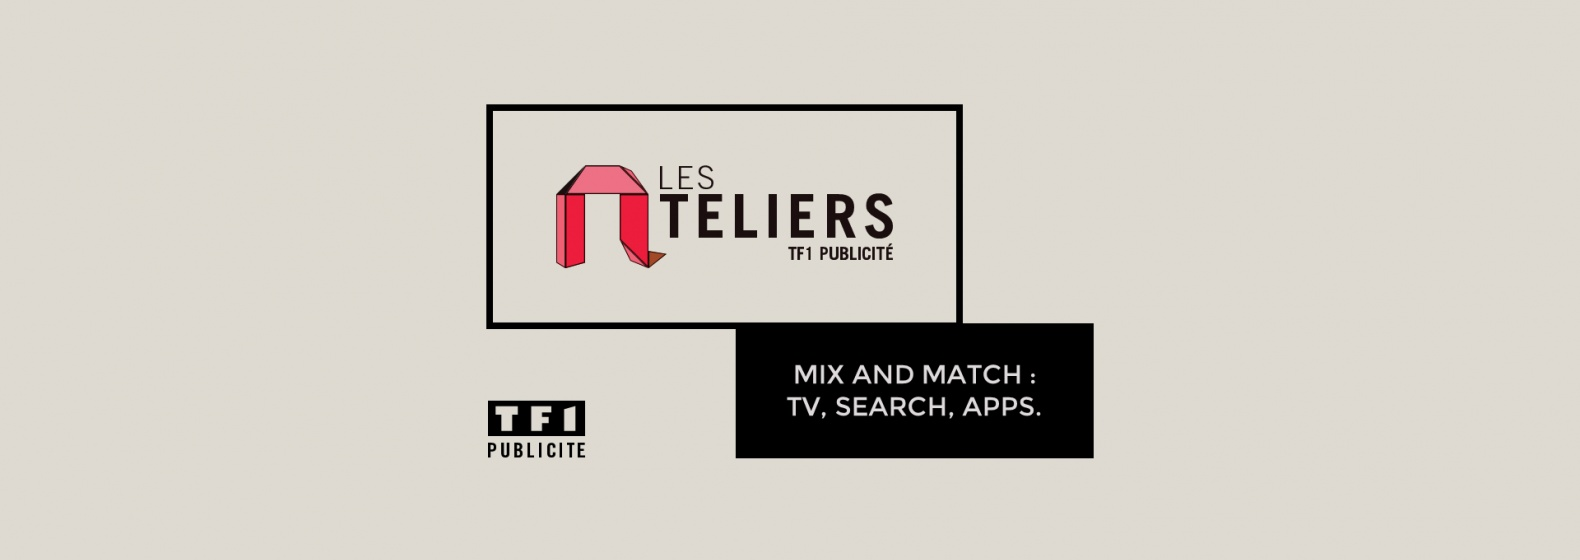 Ateliers n°7 : TV, search, apps